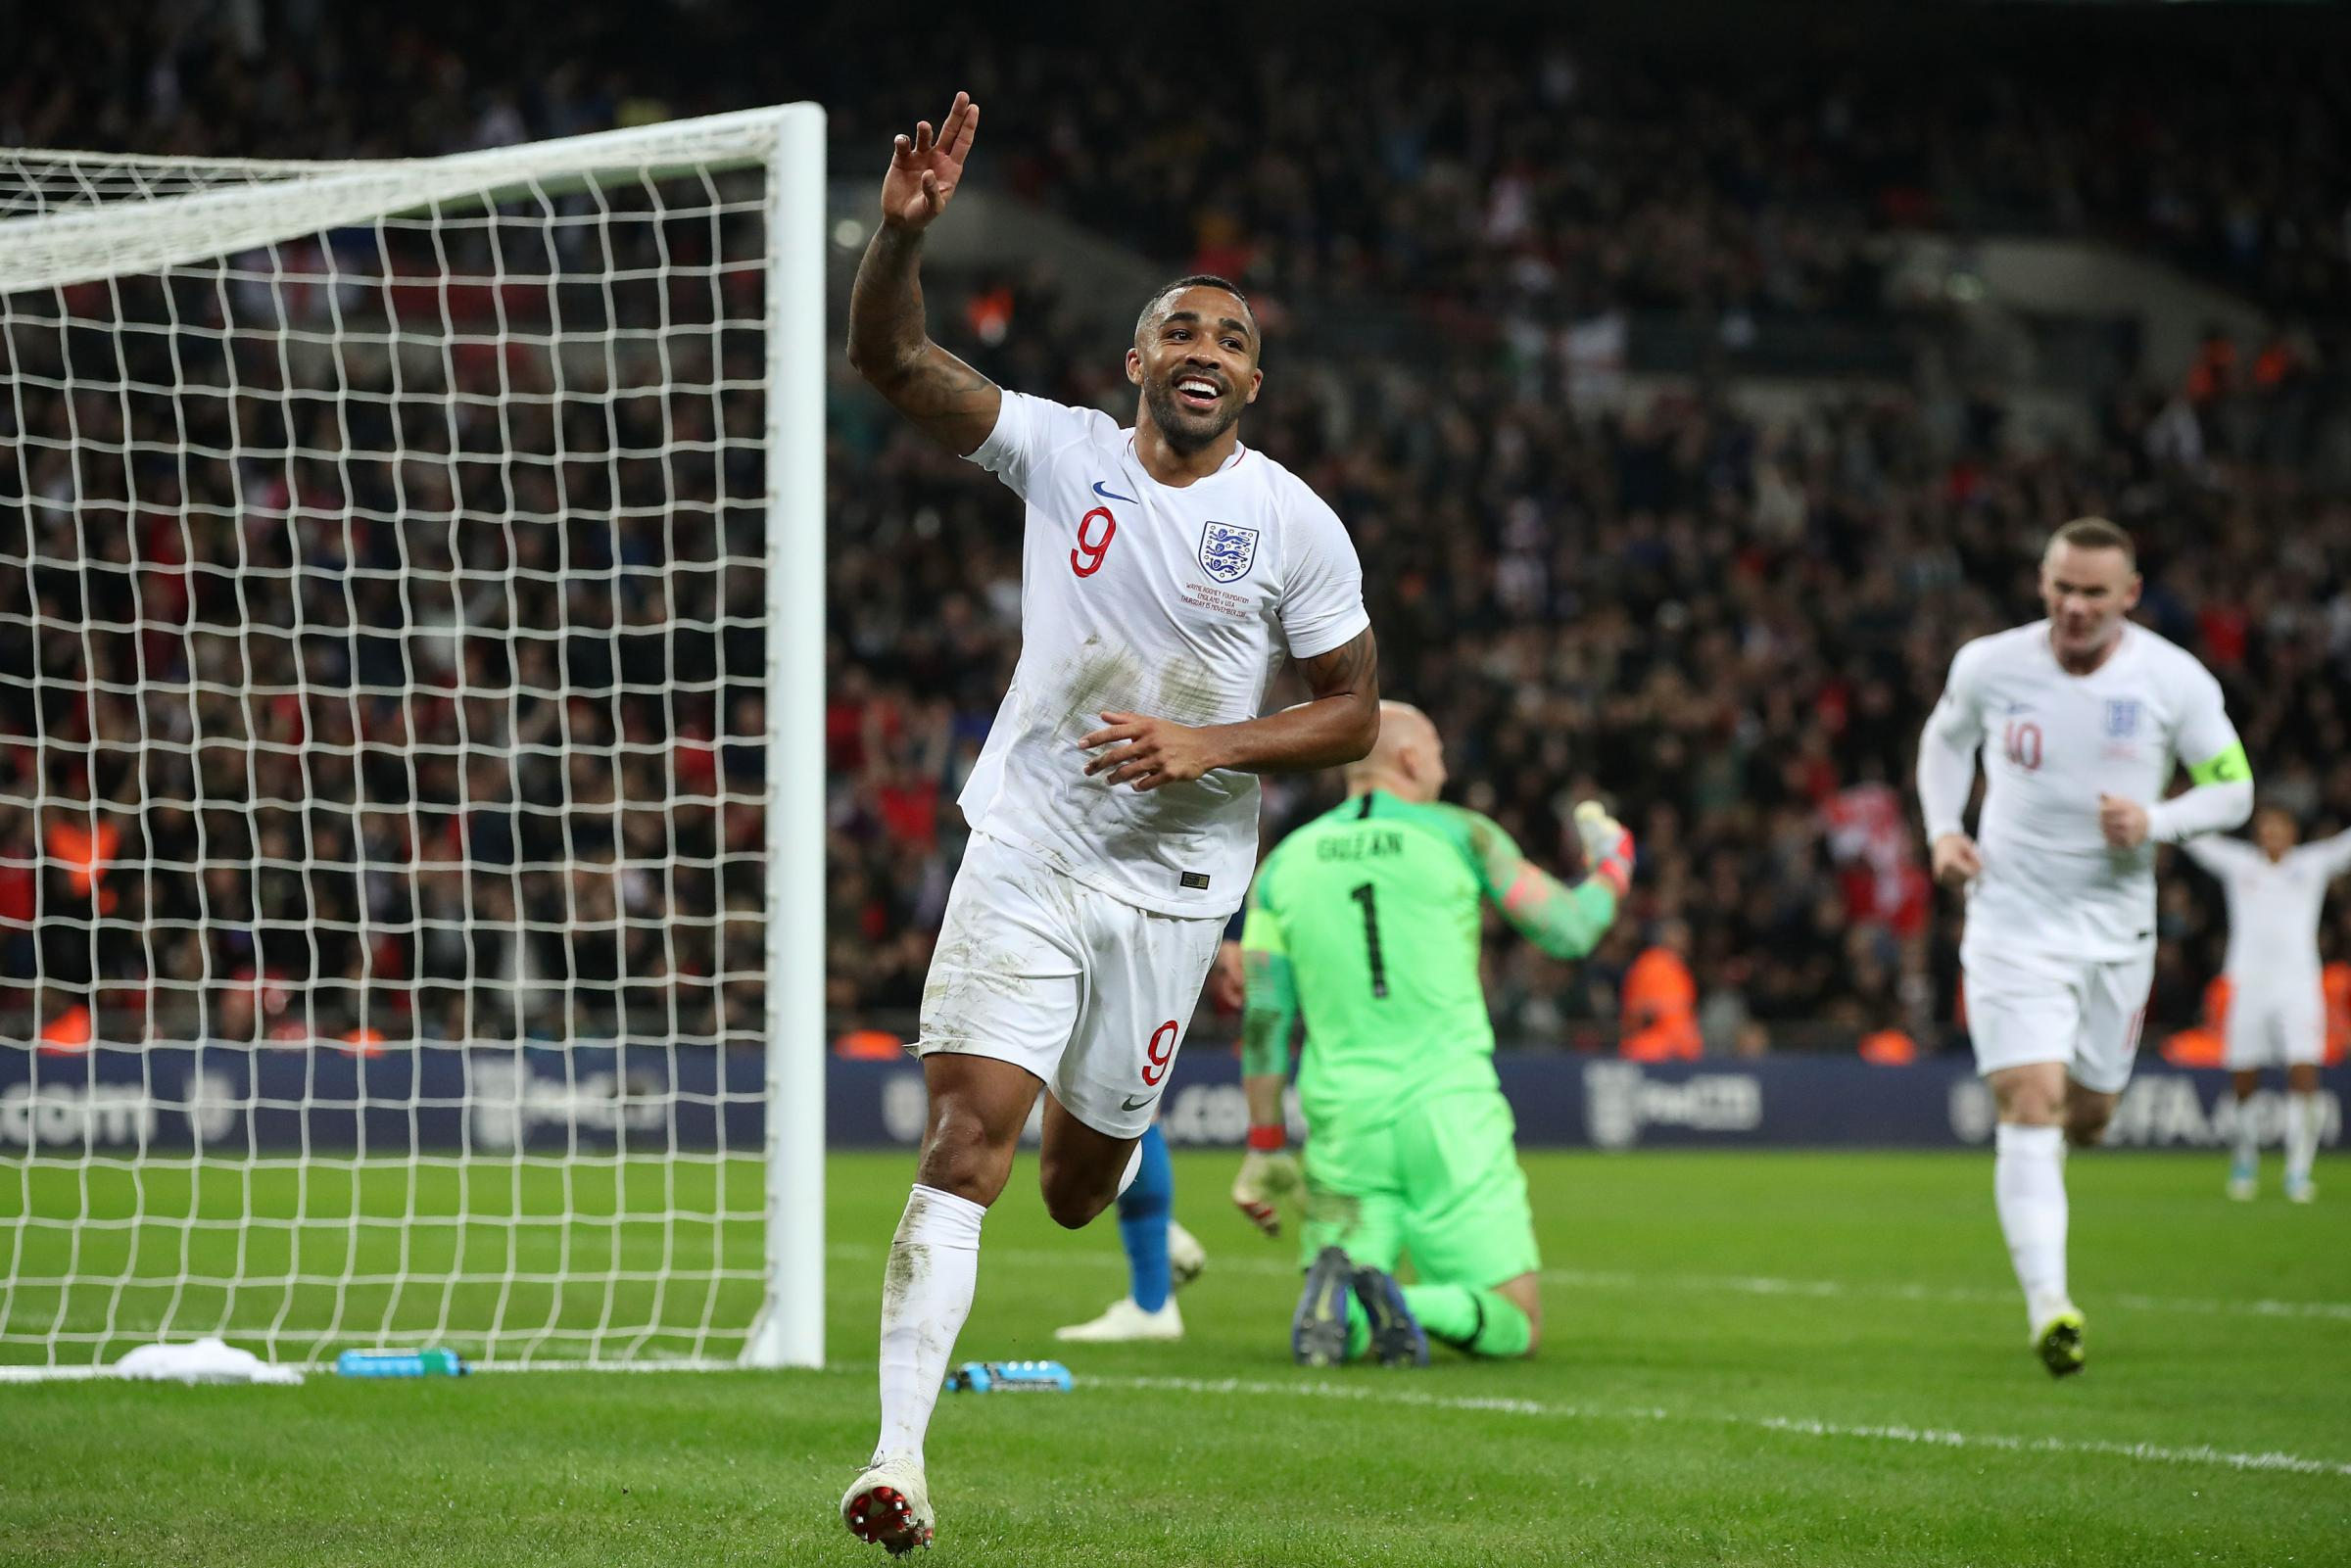 Wilson retains place in England squad for UEFA European Championship qualifiers